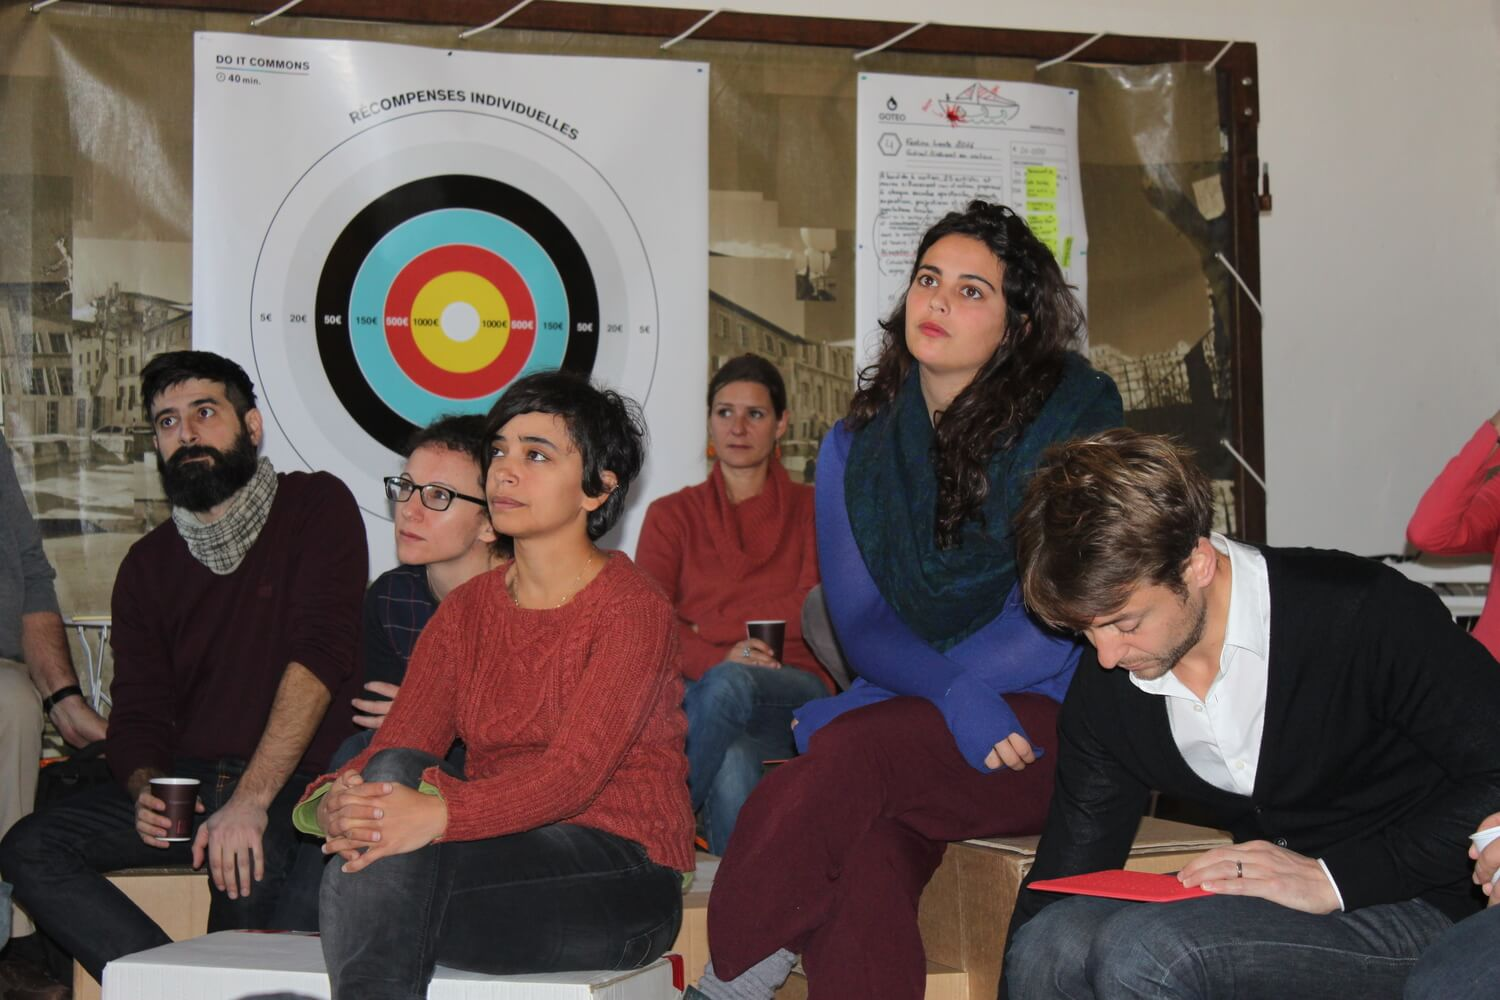 Participants during the presentation by Goteo